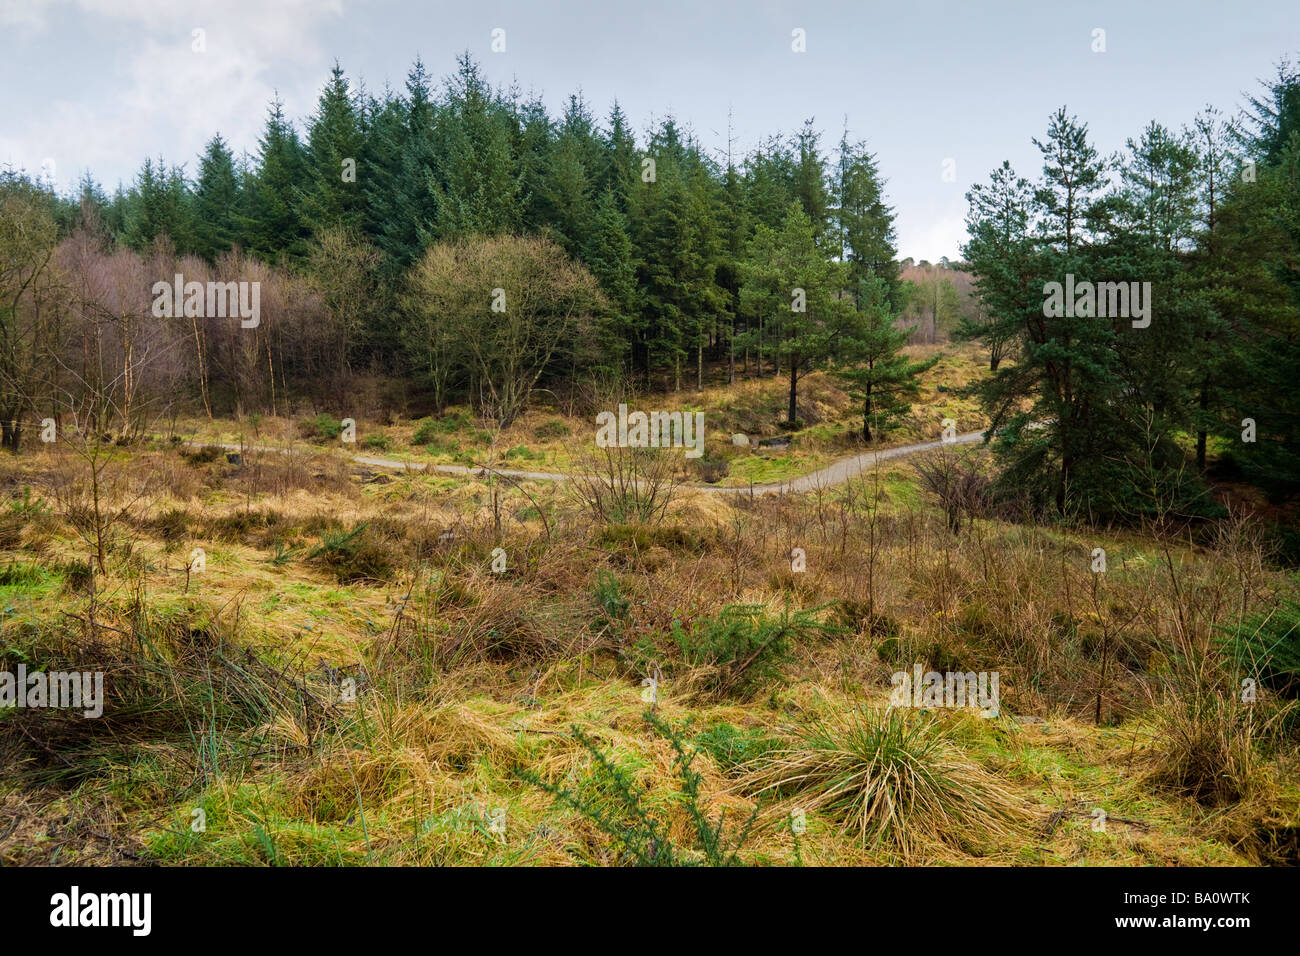 Cropton coniferous forest clearing in winter UK - Stock Image